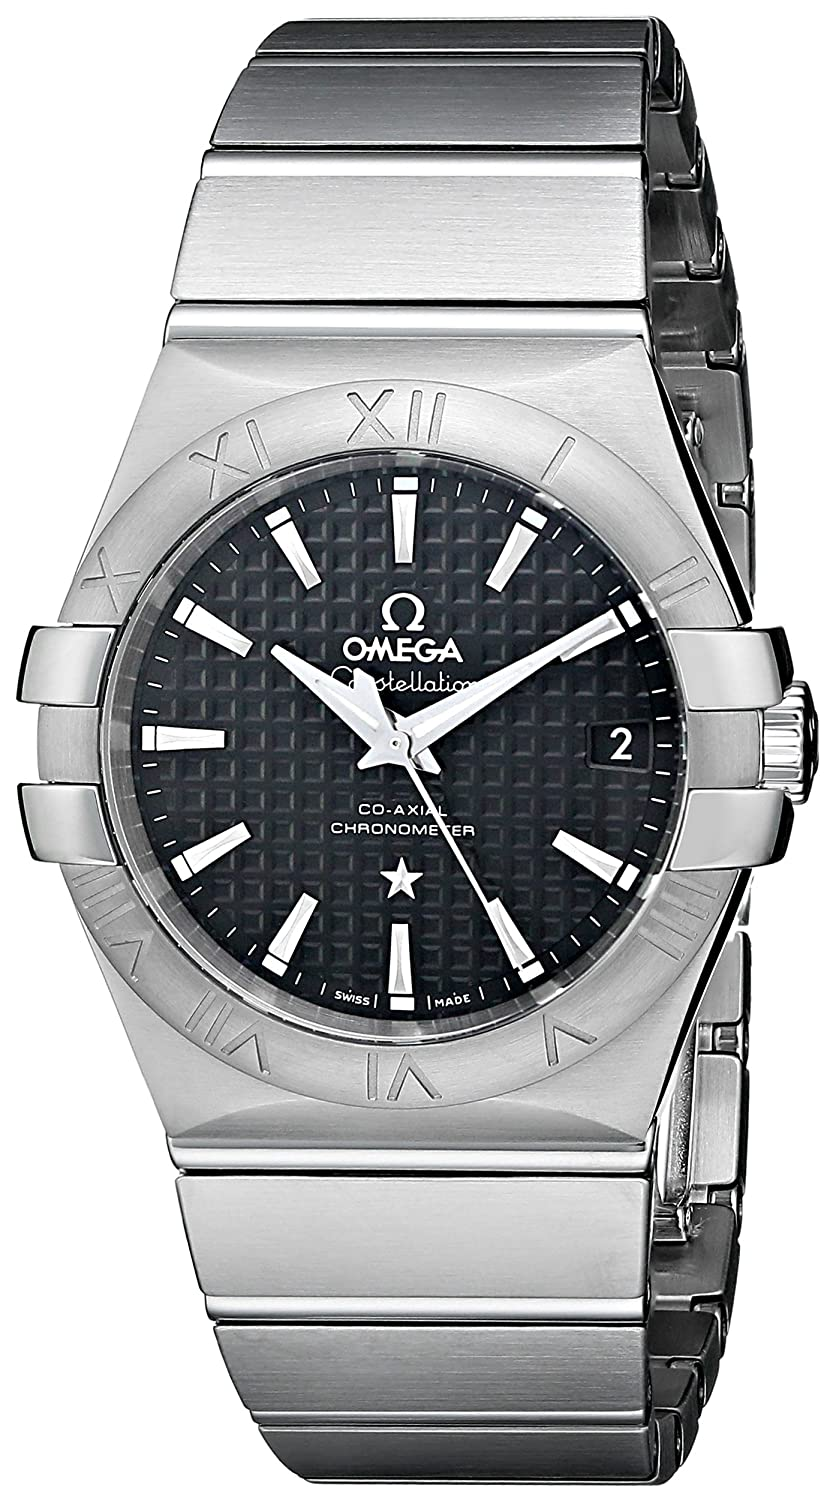 cba3078f36d5 Amazon.com  Omega Men s Constellation Co-Axial Automatic 35mm Analog  Display Swiss Automatic Silver Watch  Omega  Watches